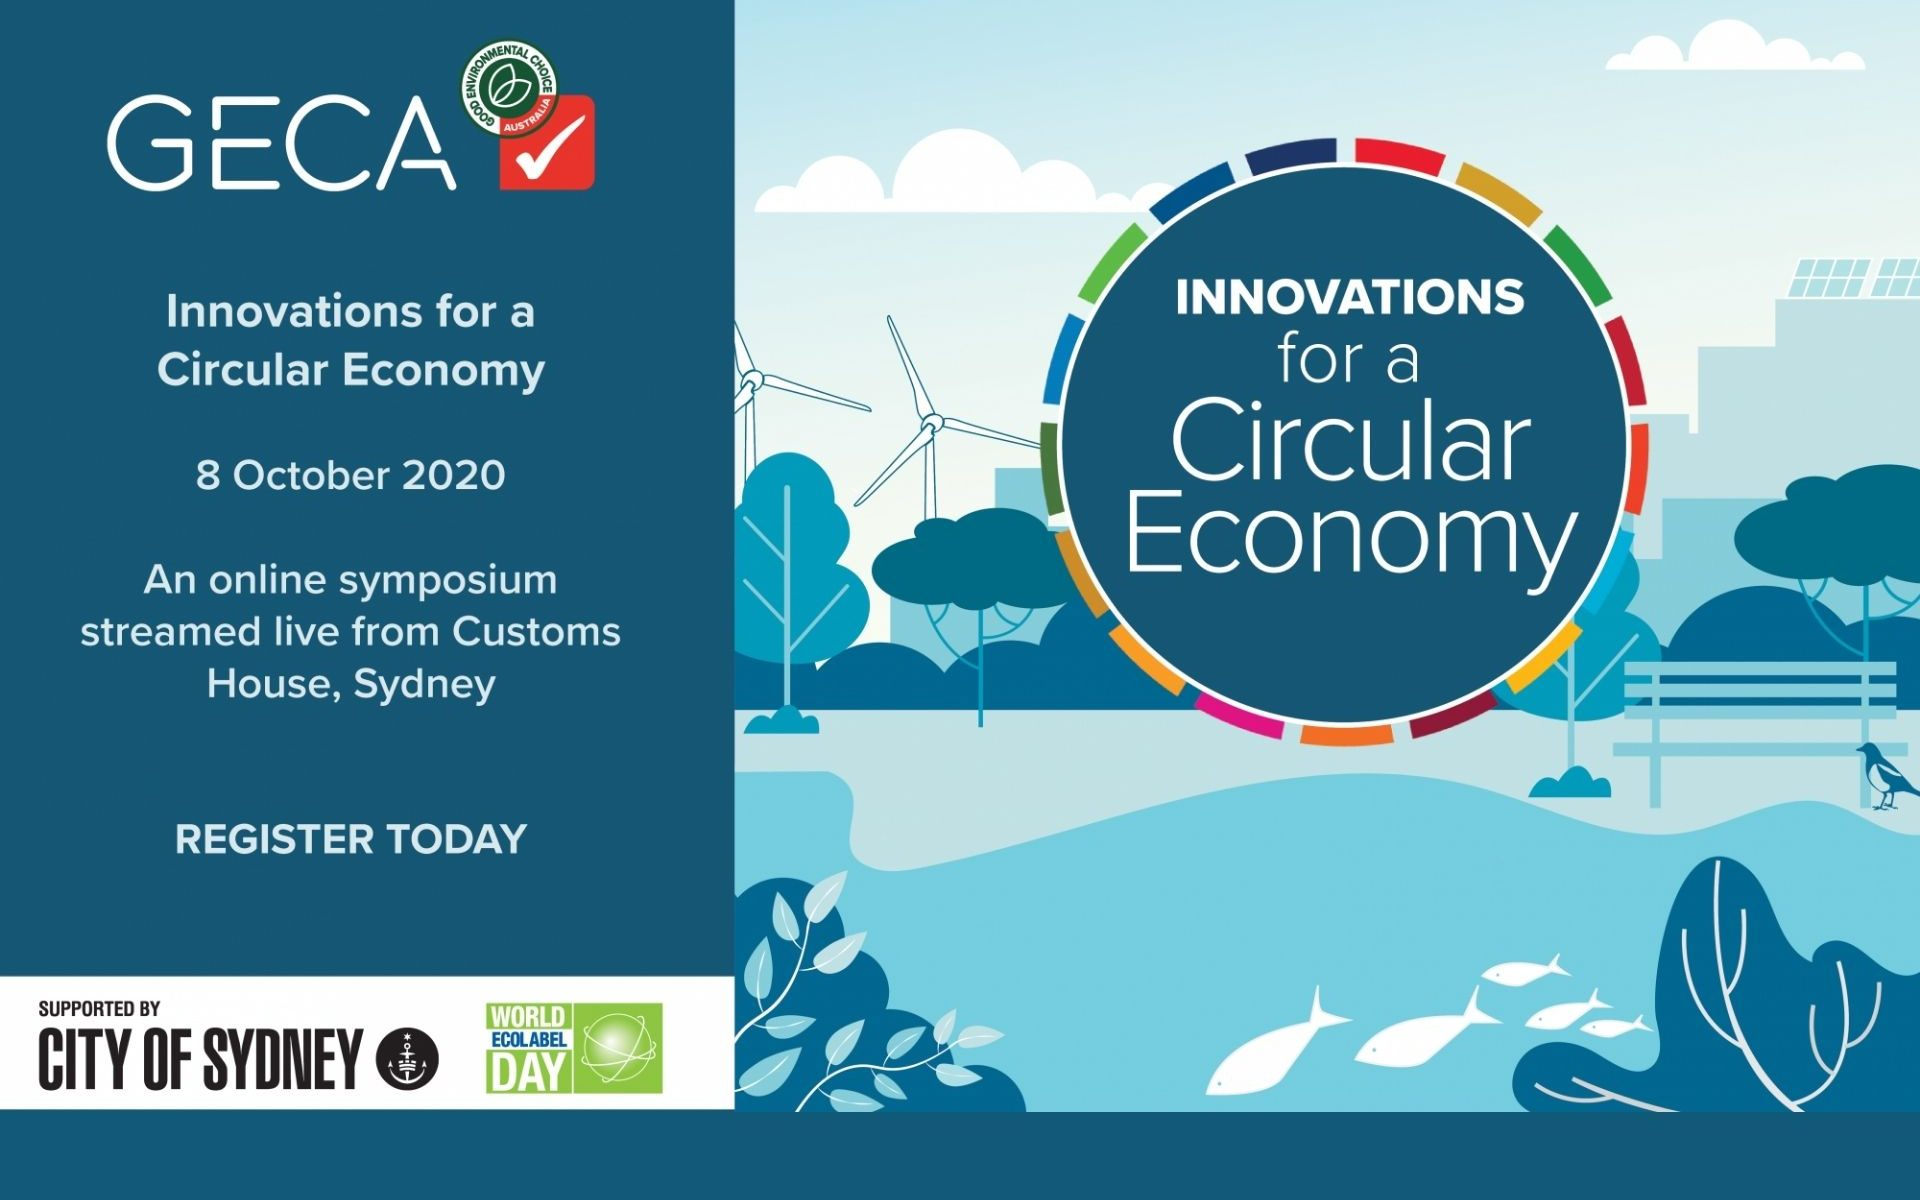 Innovations for a Circular Economy